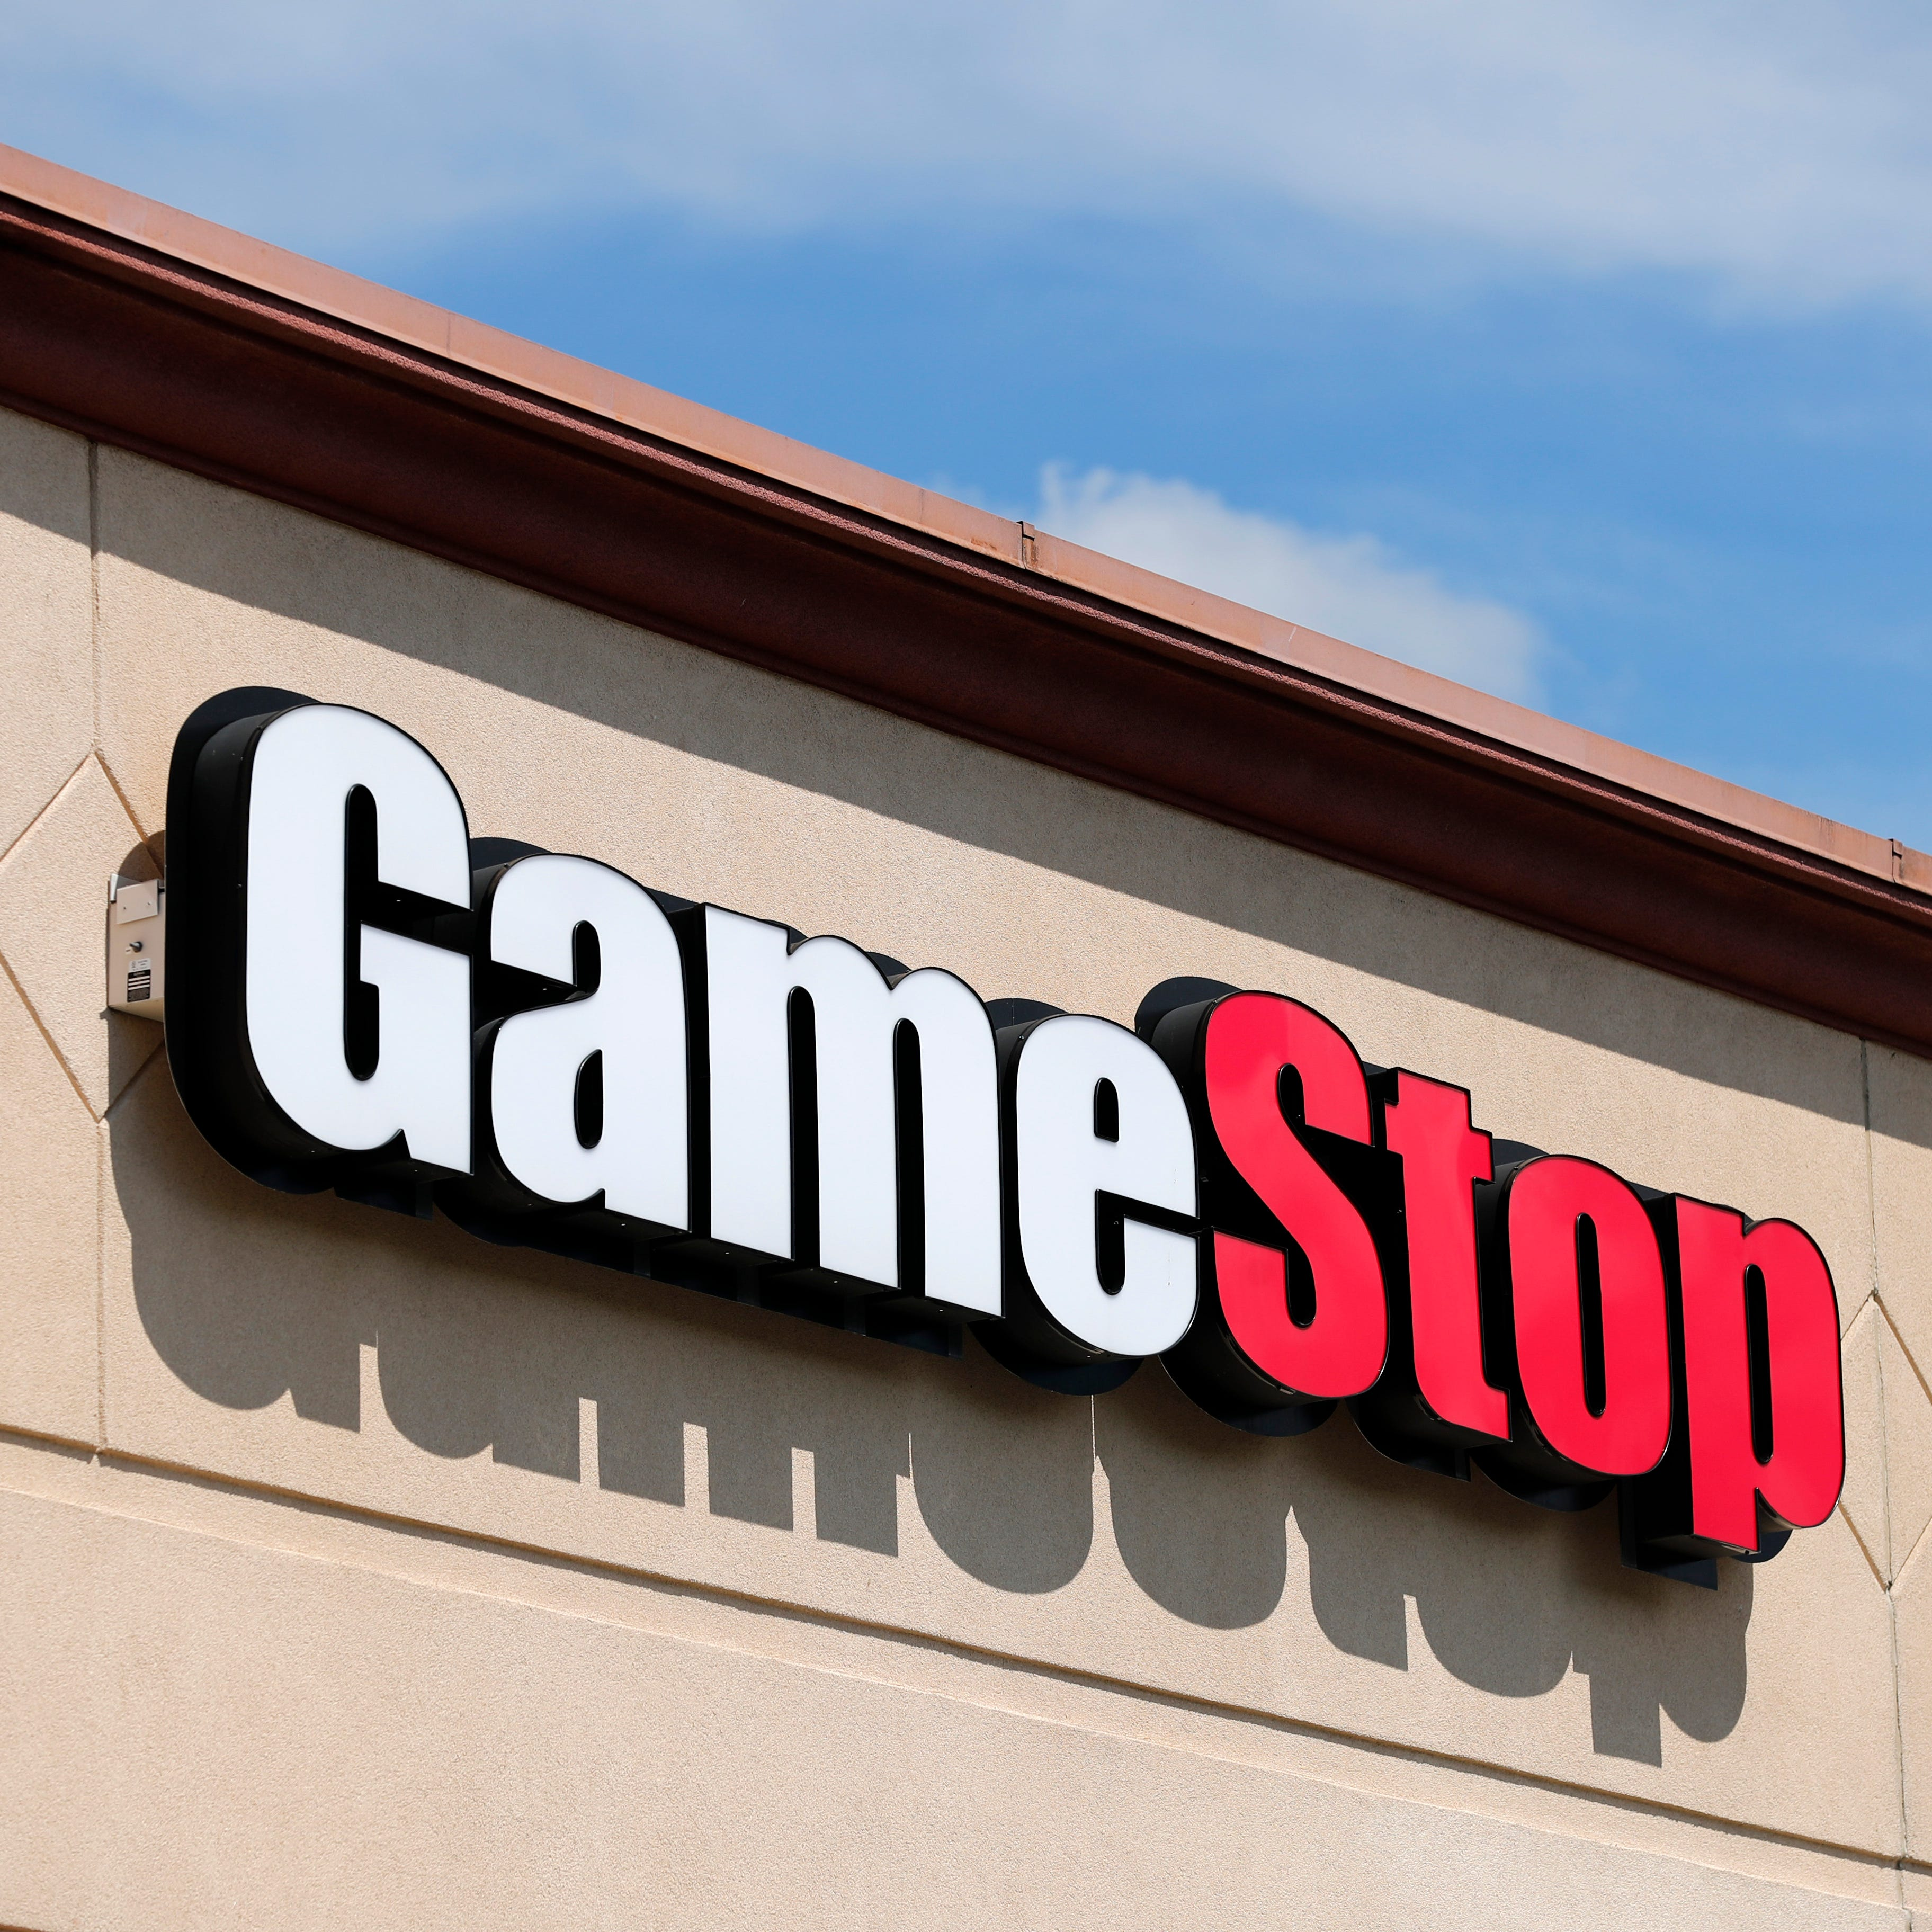 Playstation 5 Pre Orders Gamestop Says It Will Offer More Sept 25